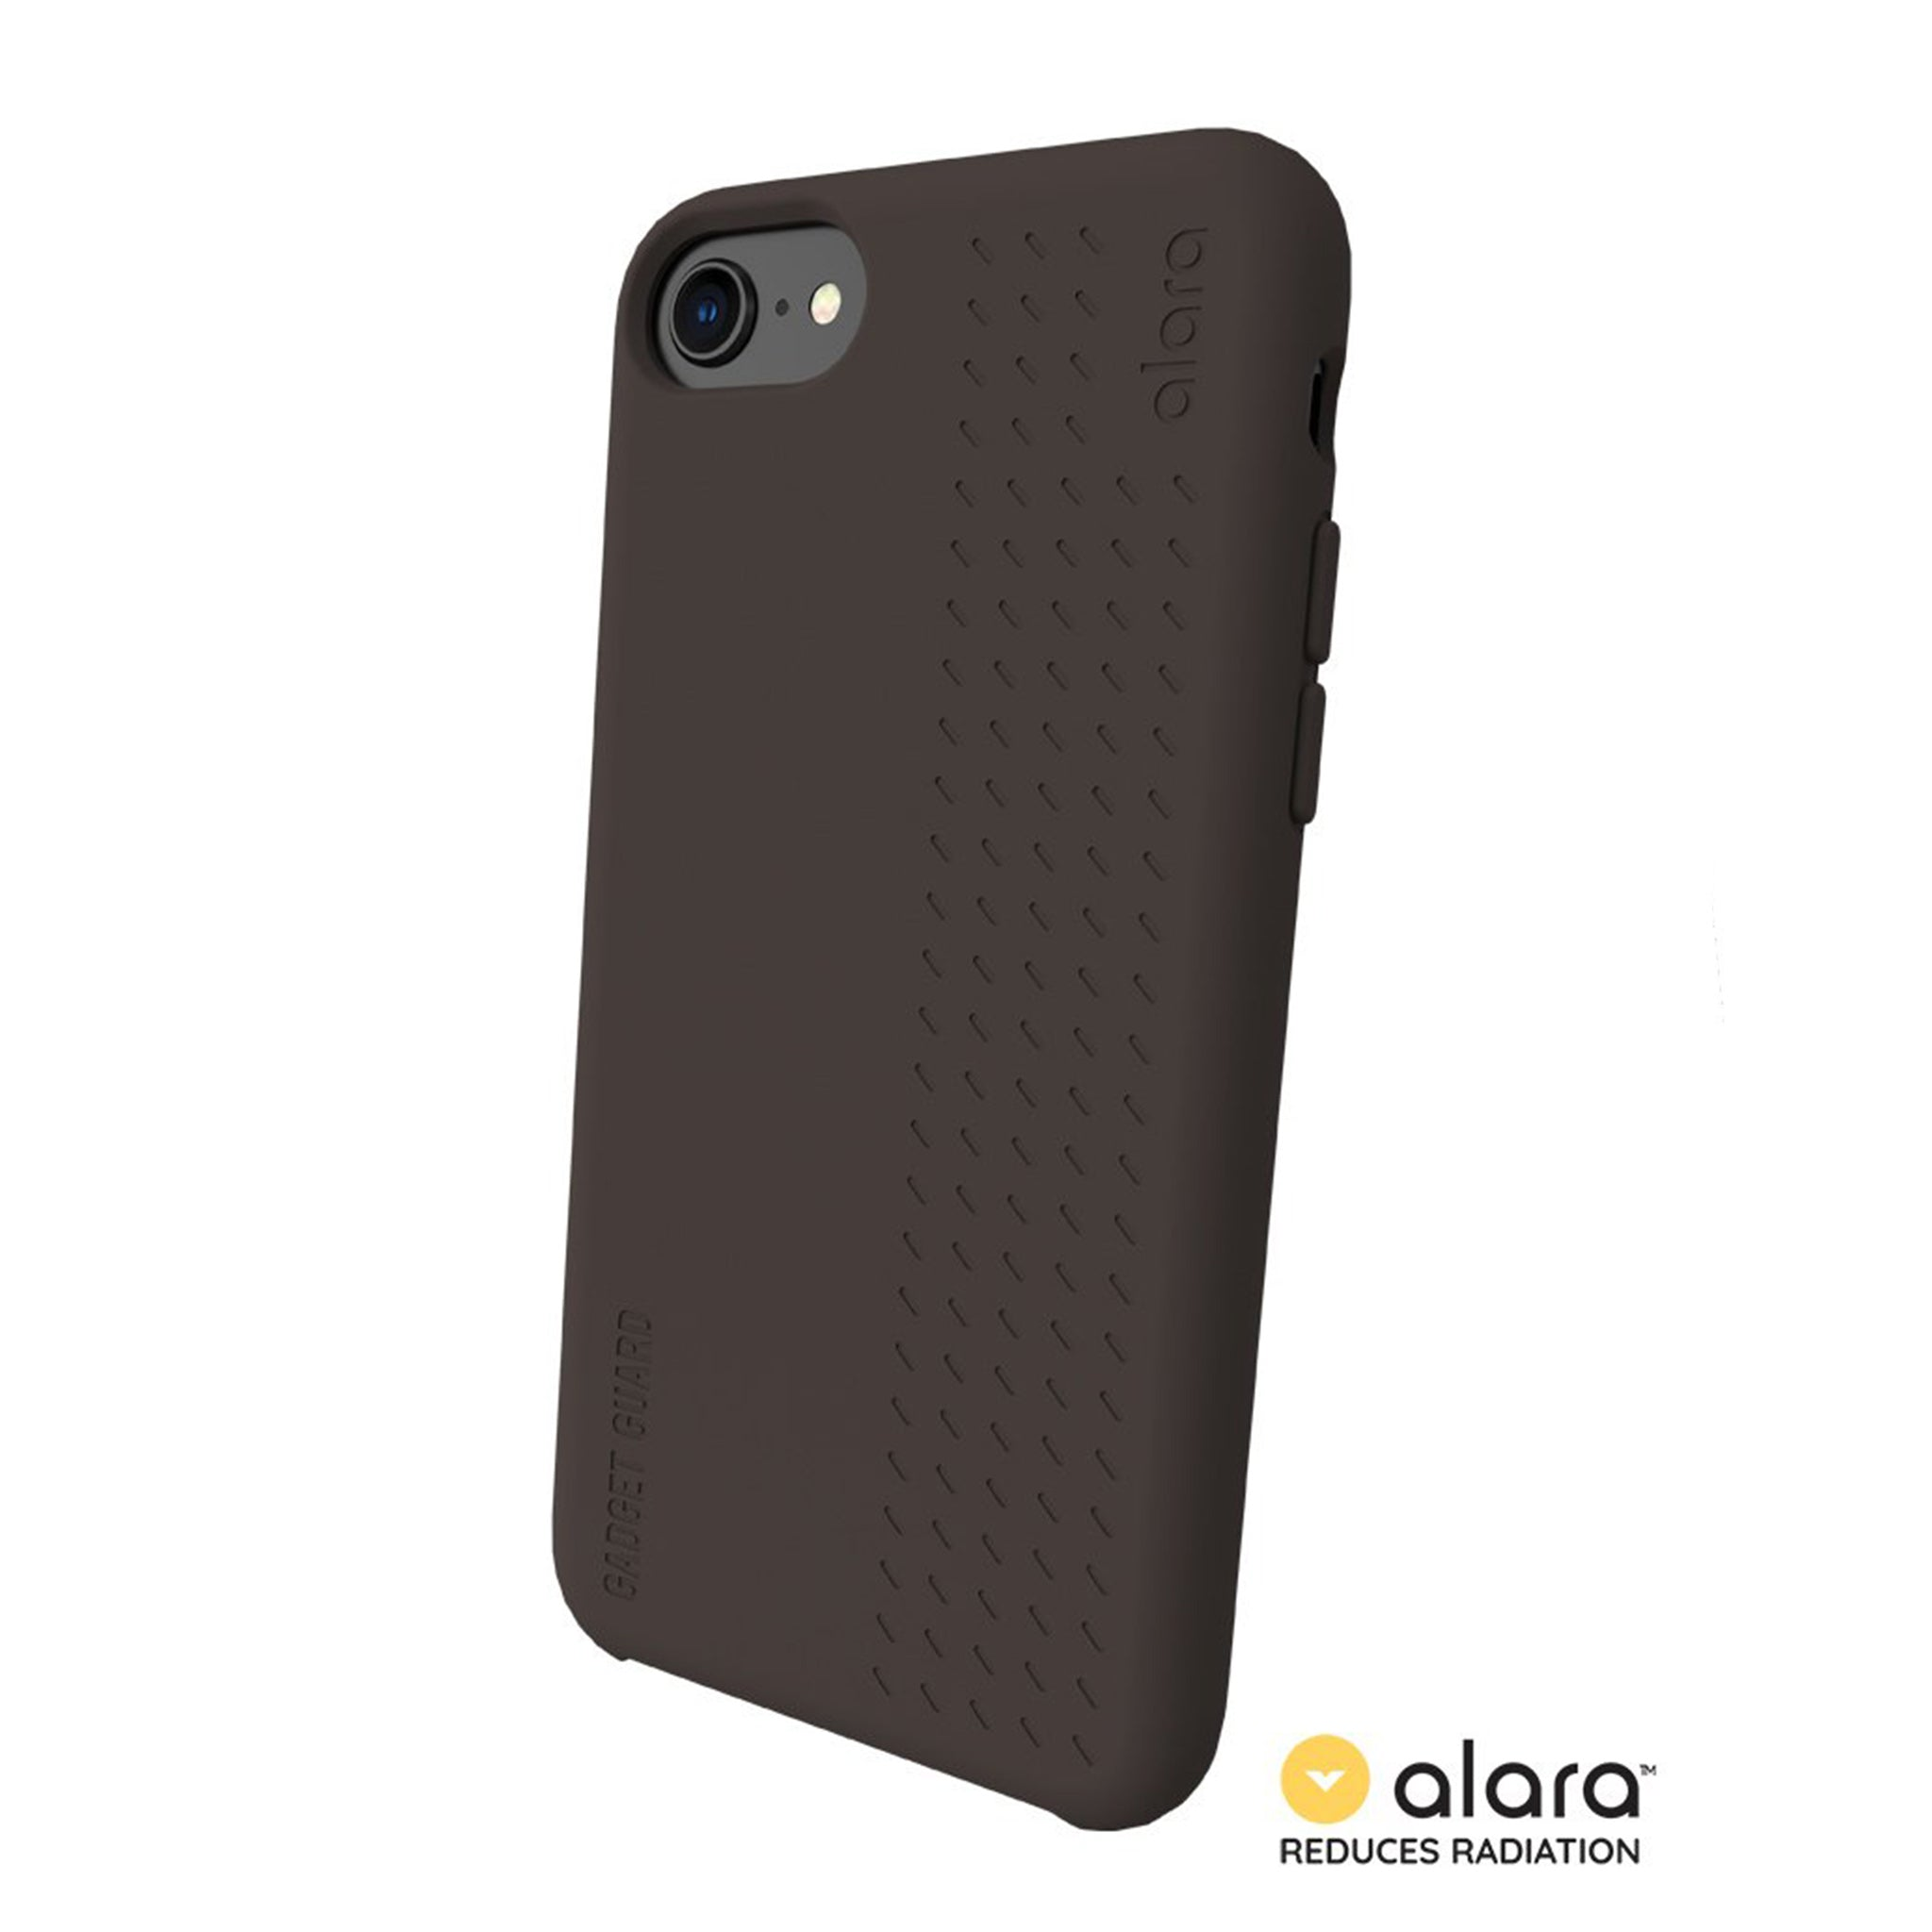 Apple iPhone SE (2020) alara Slim Case by Gadget Guard